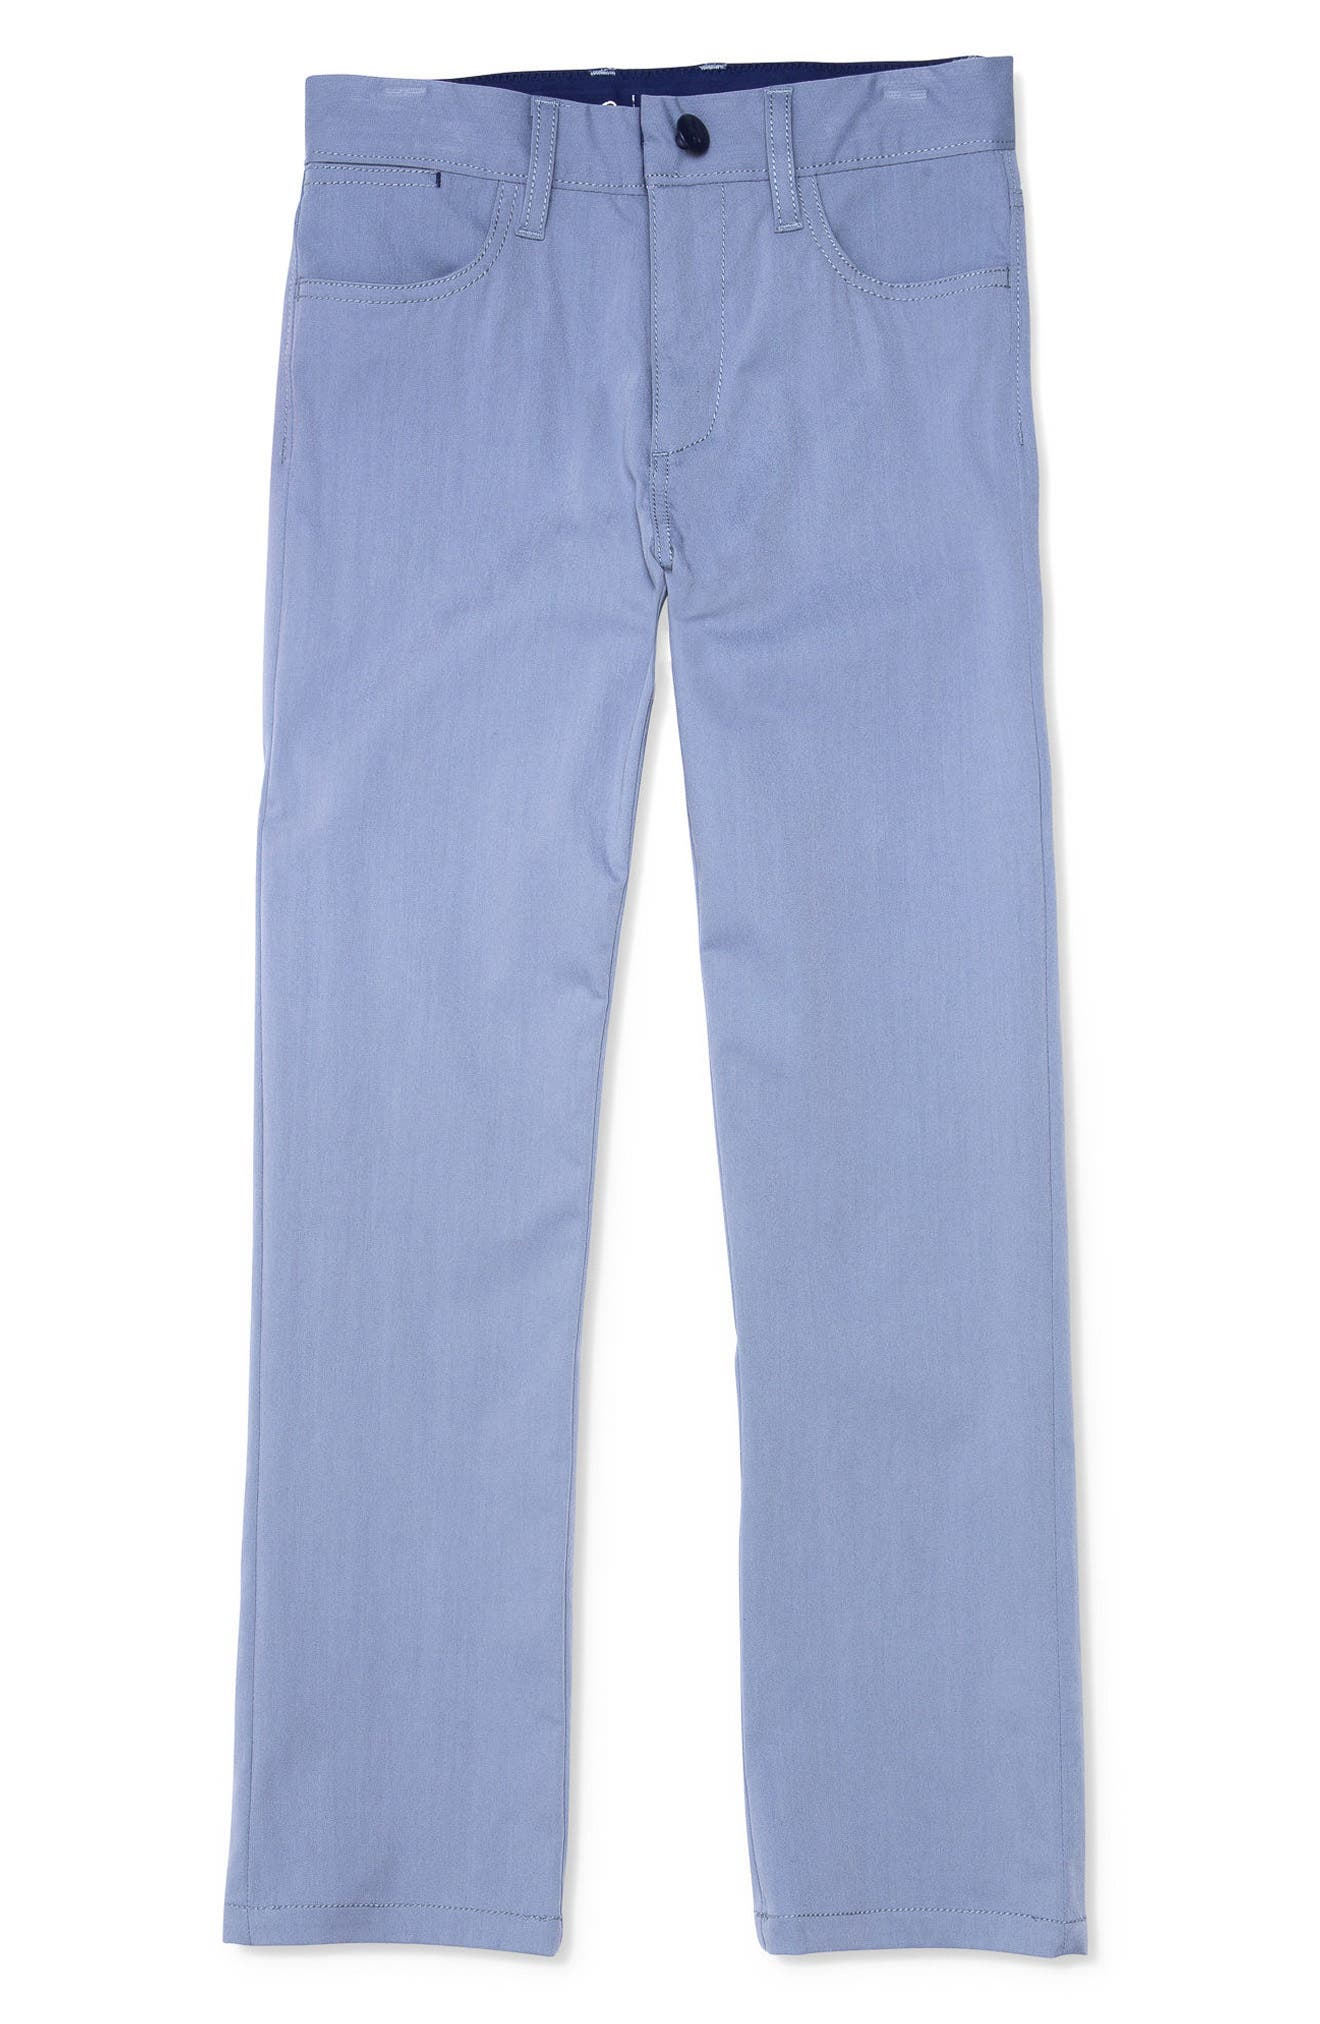 Marin Pants,                         Main,                         color, 032